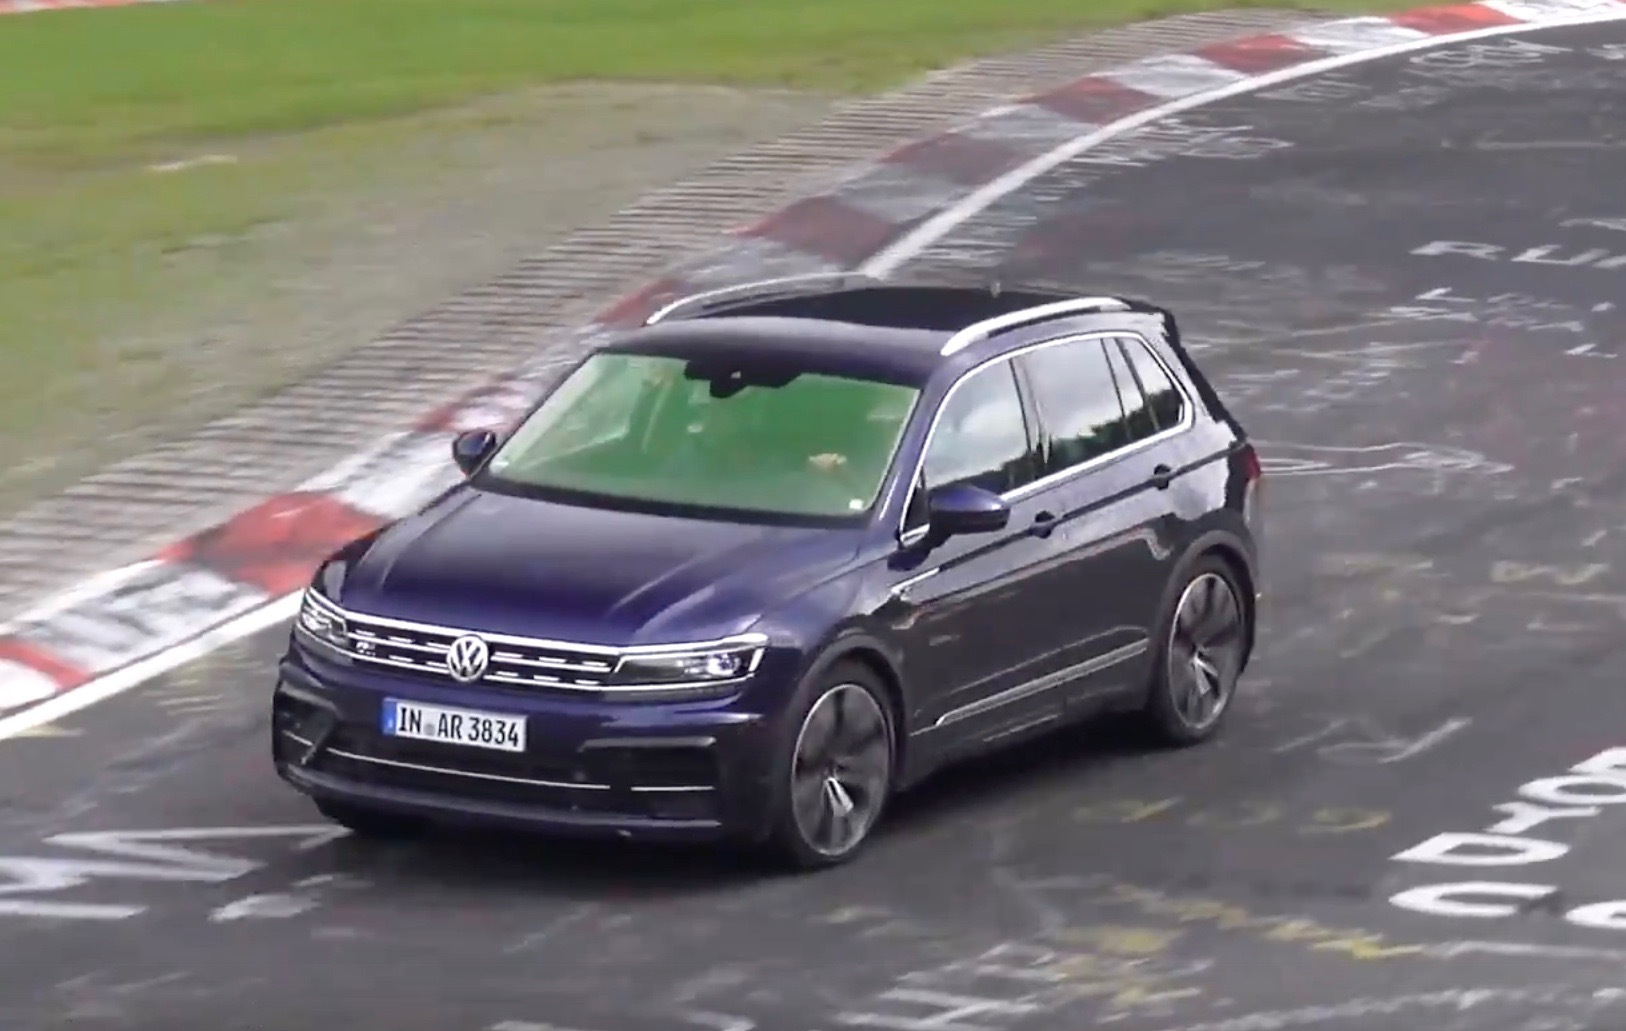 2018 volkswagen tiguan r spotted sounds like 2 5 tfsi 5cyl video performancedrive. Black Bedroom Furniture Sets. Home Design Ideas